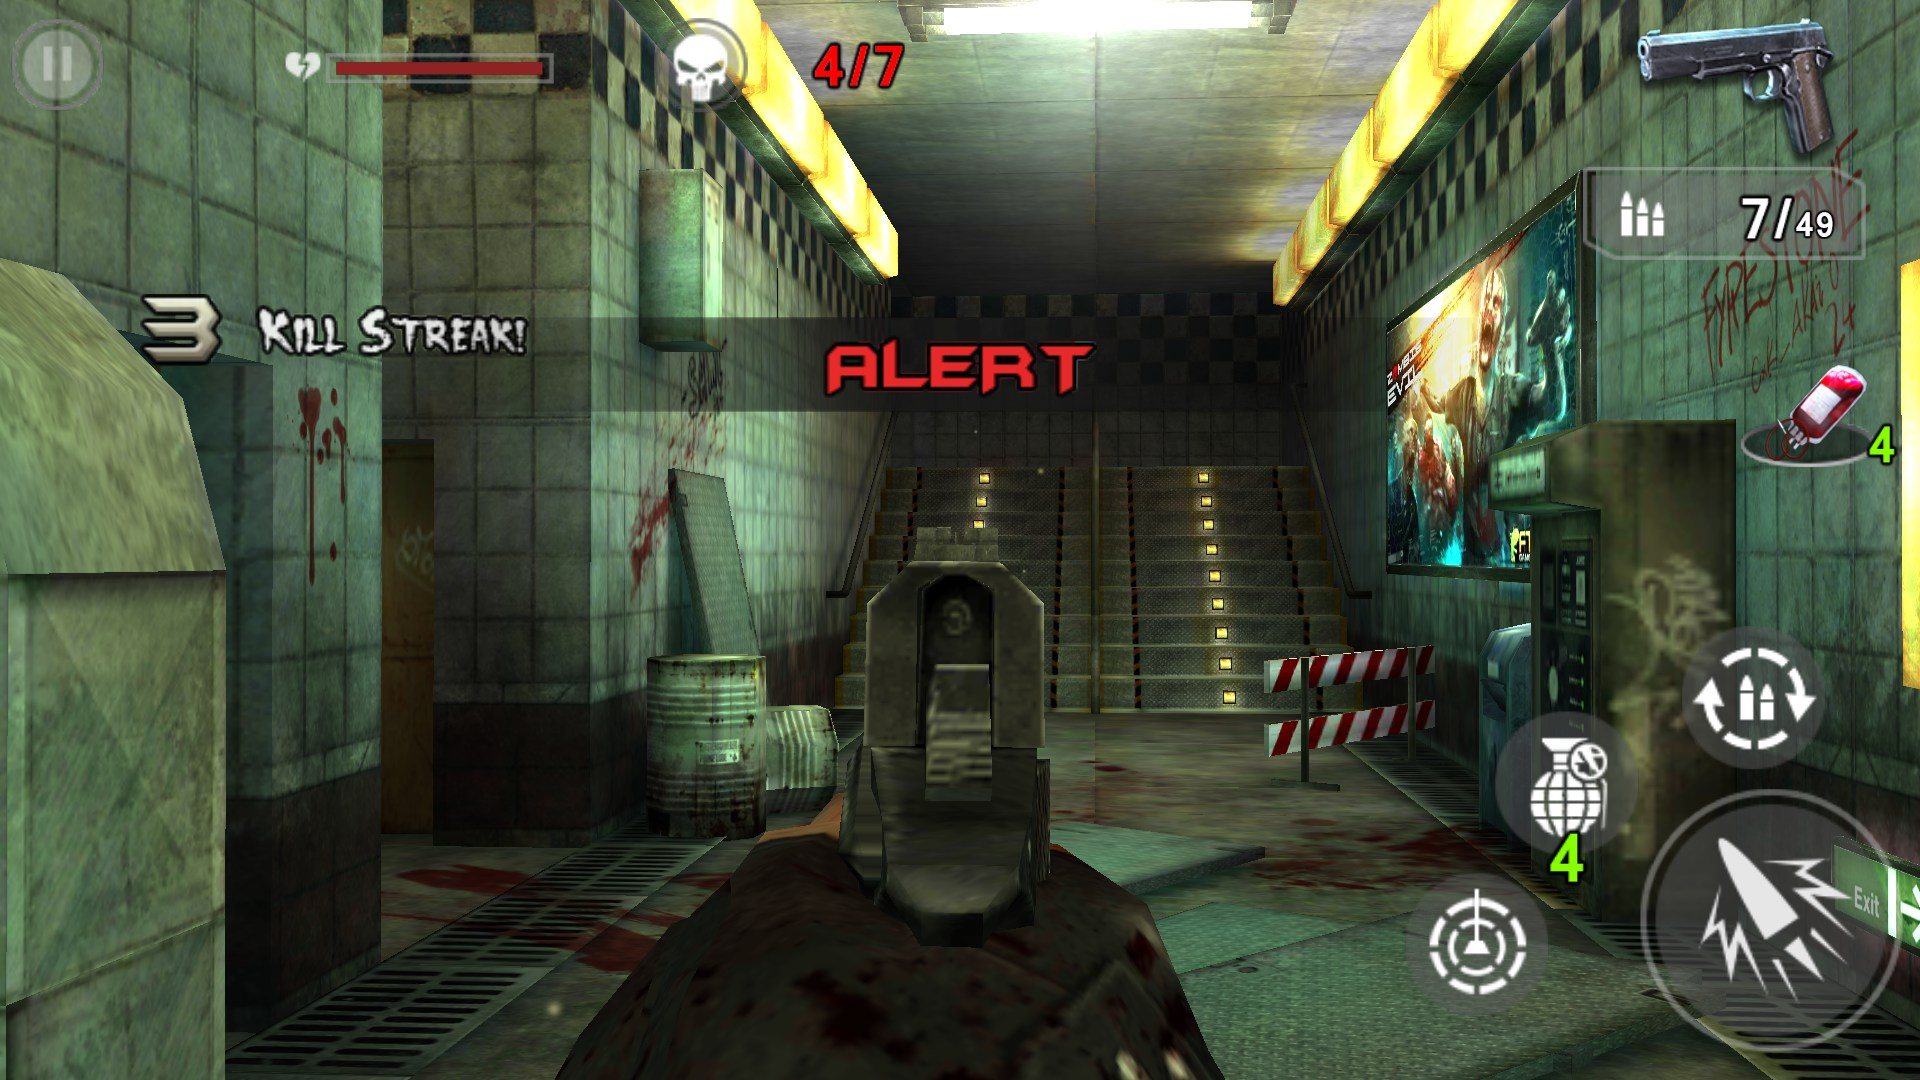 Zombie n. W. O android games free download [shooting] | game android.